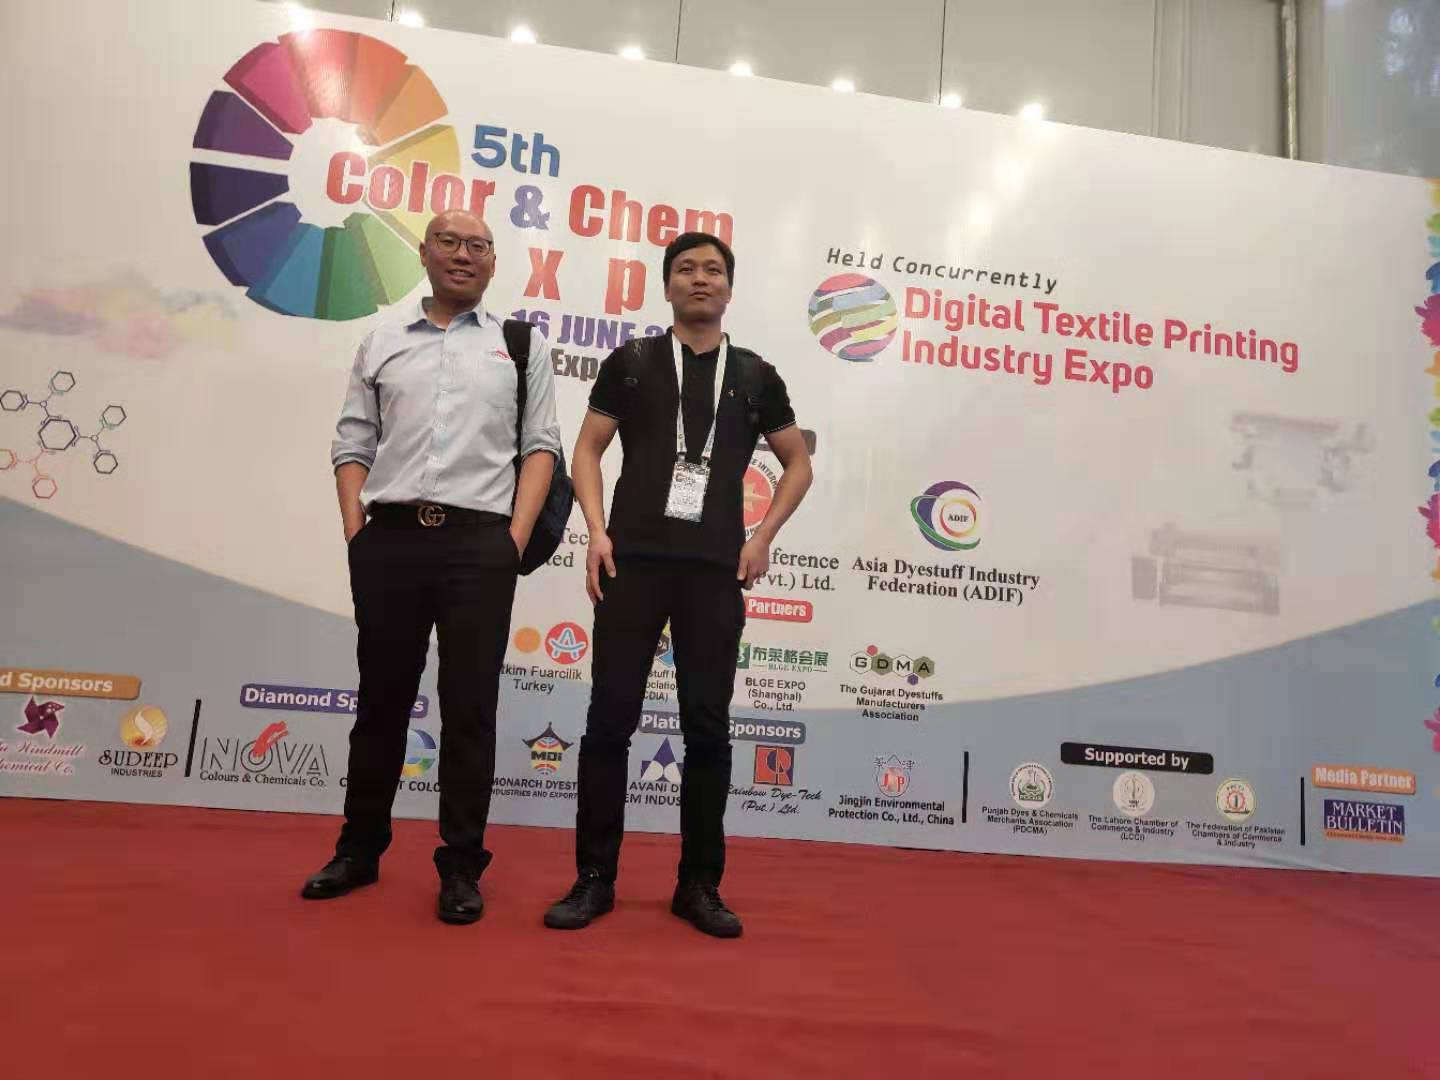 attending 5th color&chem on June in Pakista